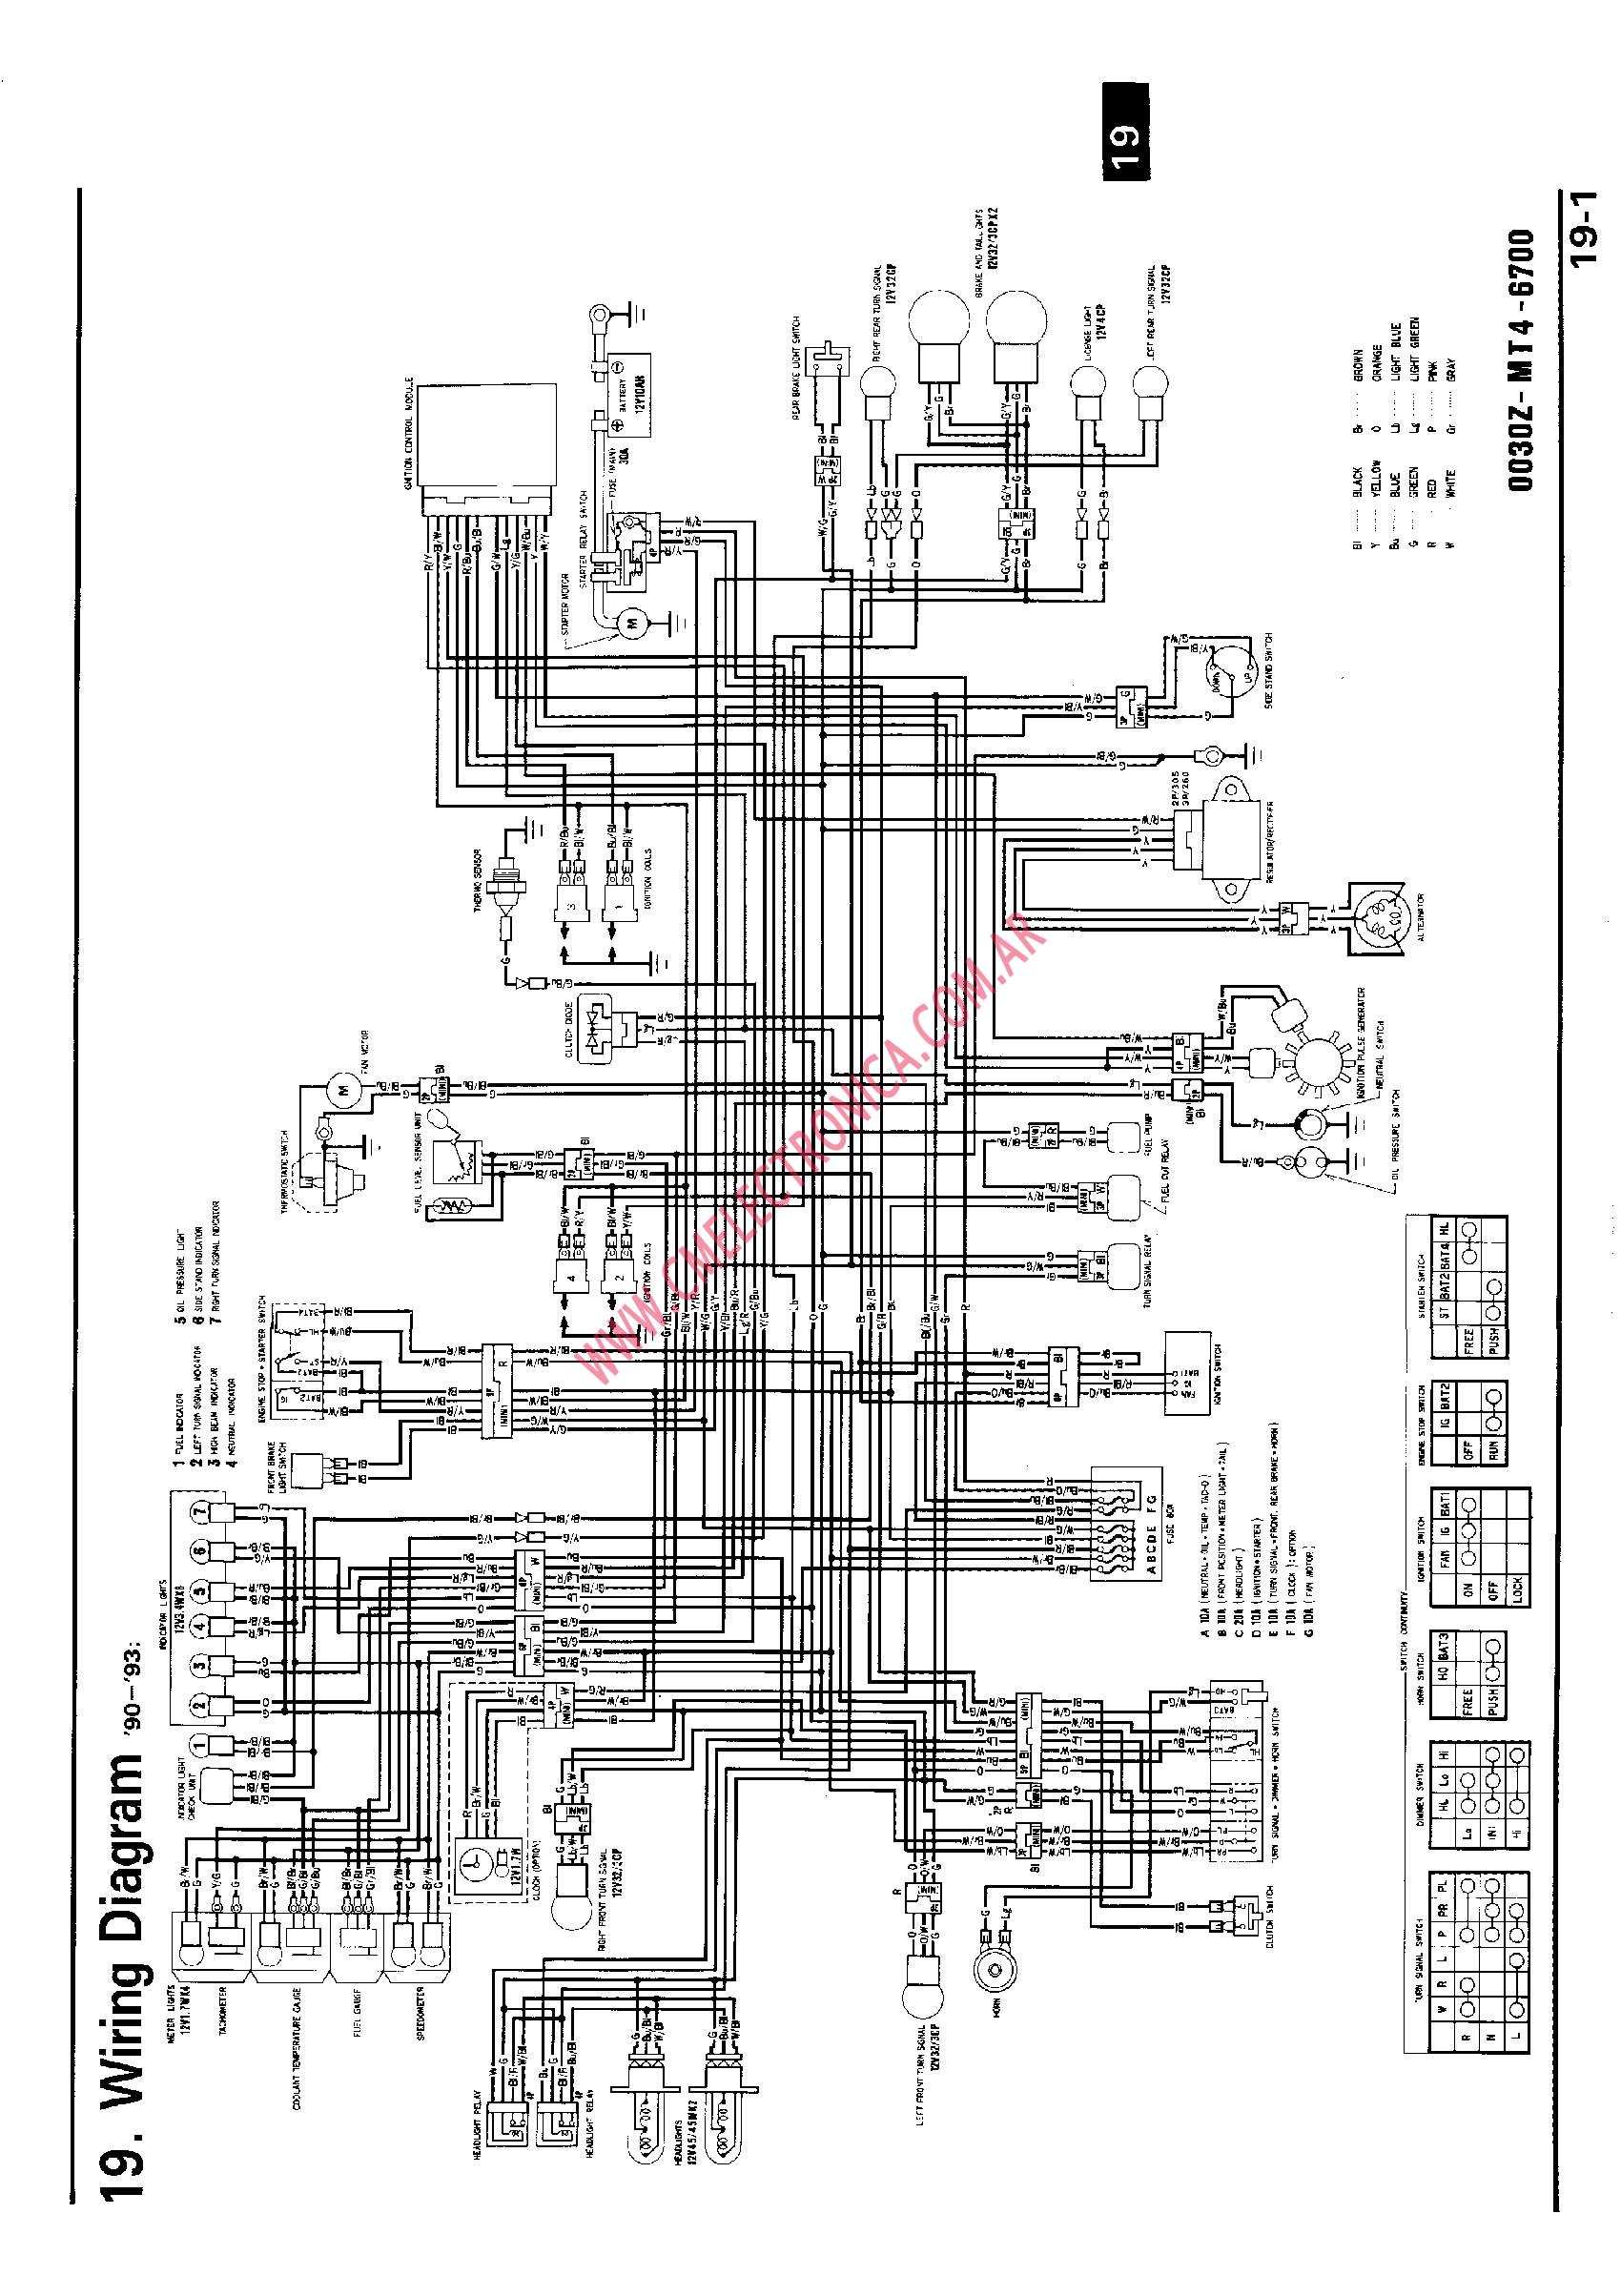 Suzuki Rf900 Wiring Schematic Electrical Diagrams Rv90 Diagram Rf900r And Engine 1986 650 Ax100